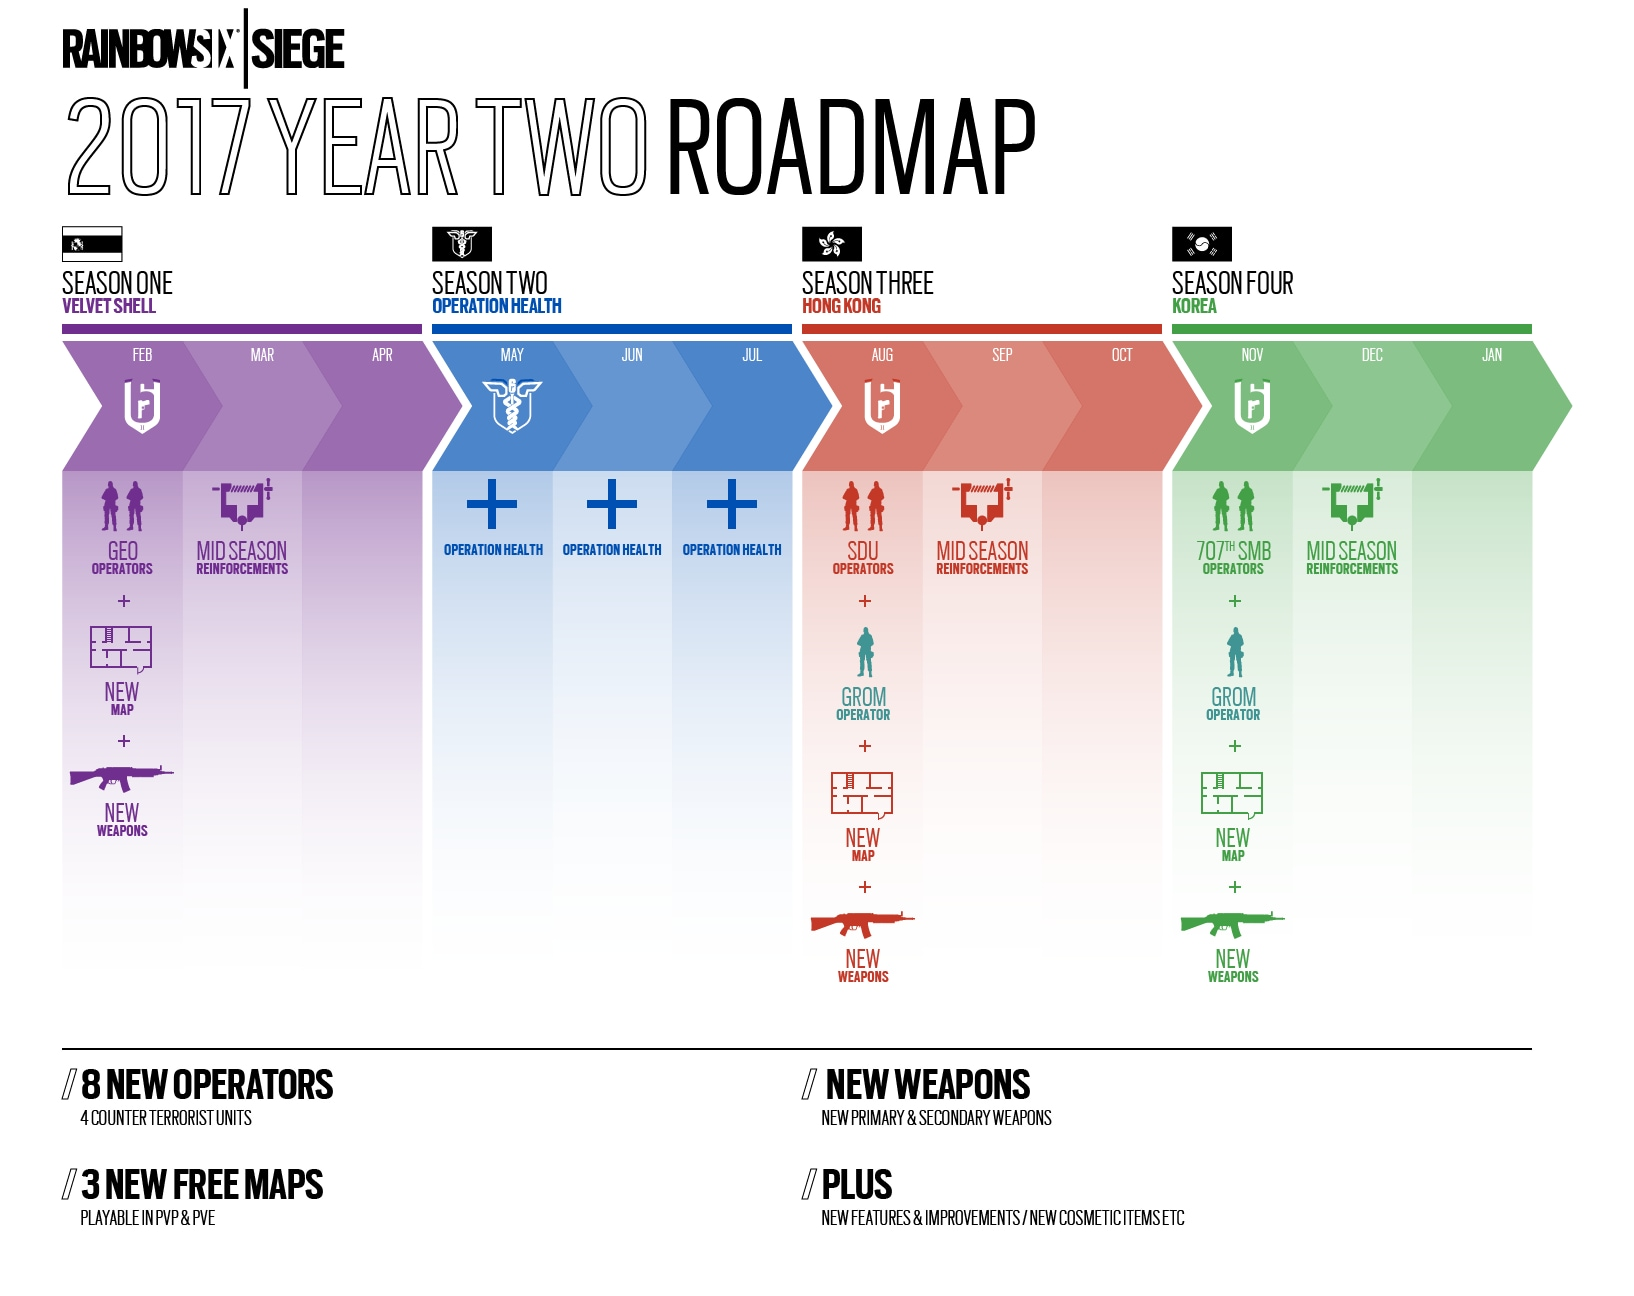 r6_op_health_year2_roadmap_updated_289785.png